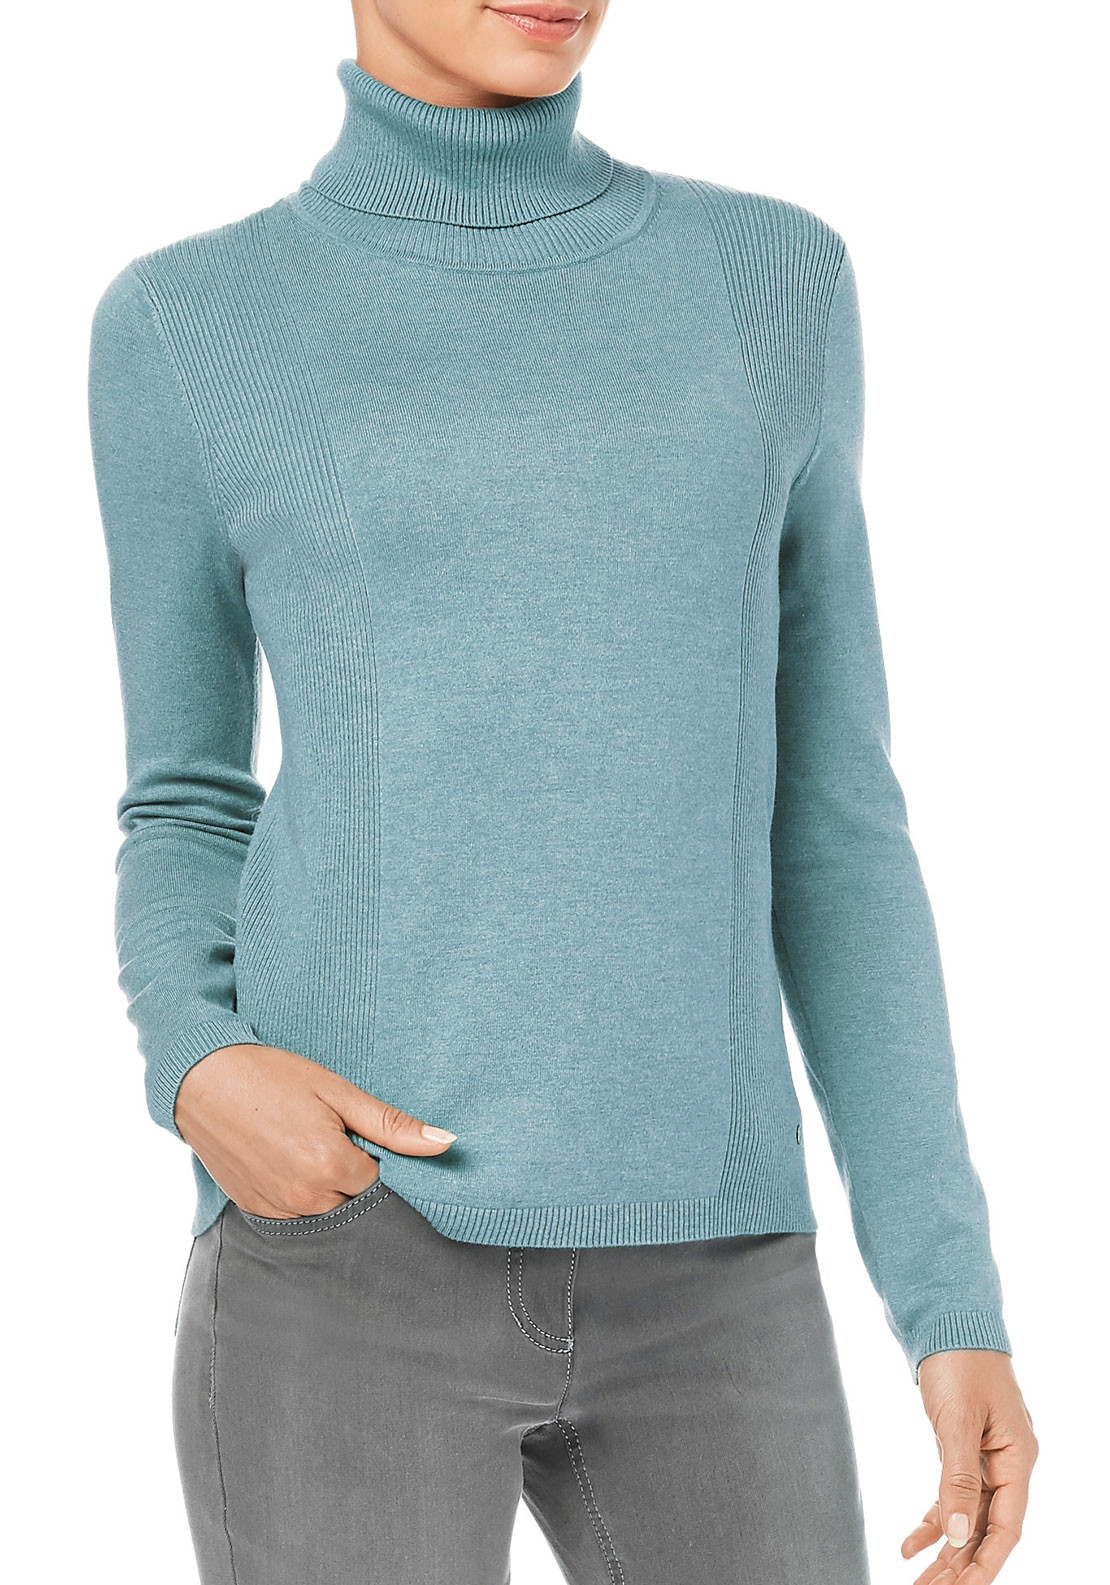 Gerry Weber Fine Knit Sweater, Duckegg Blue